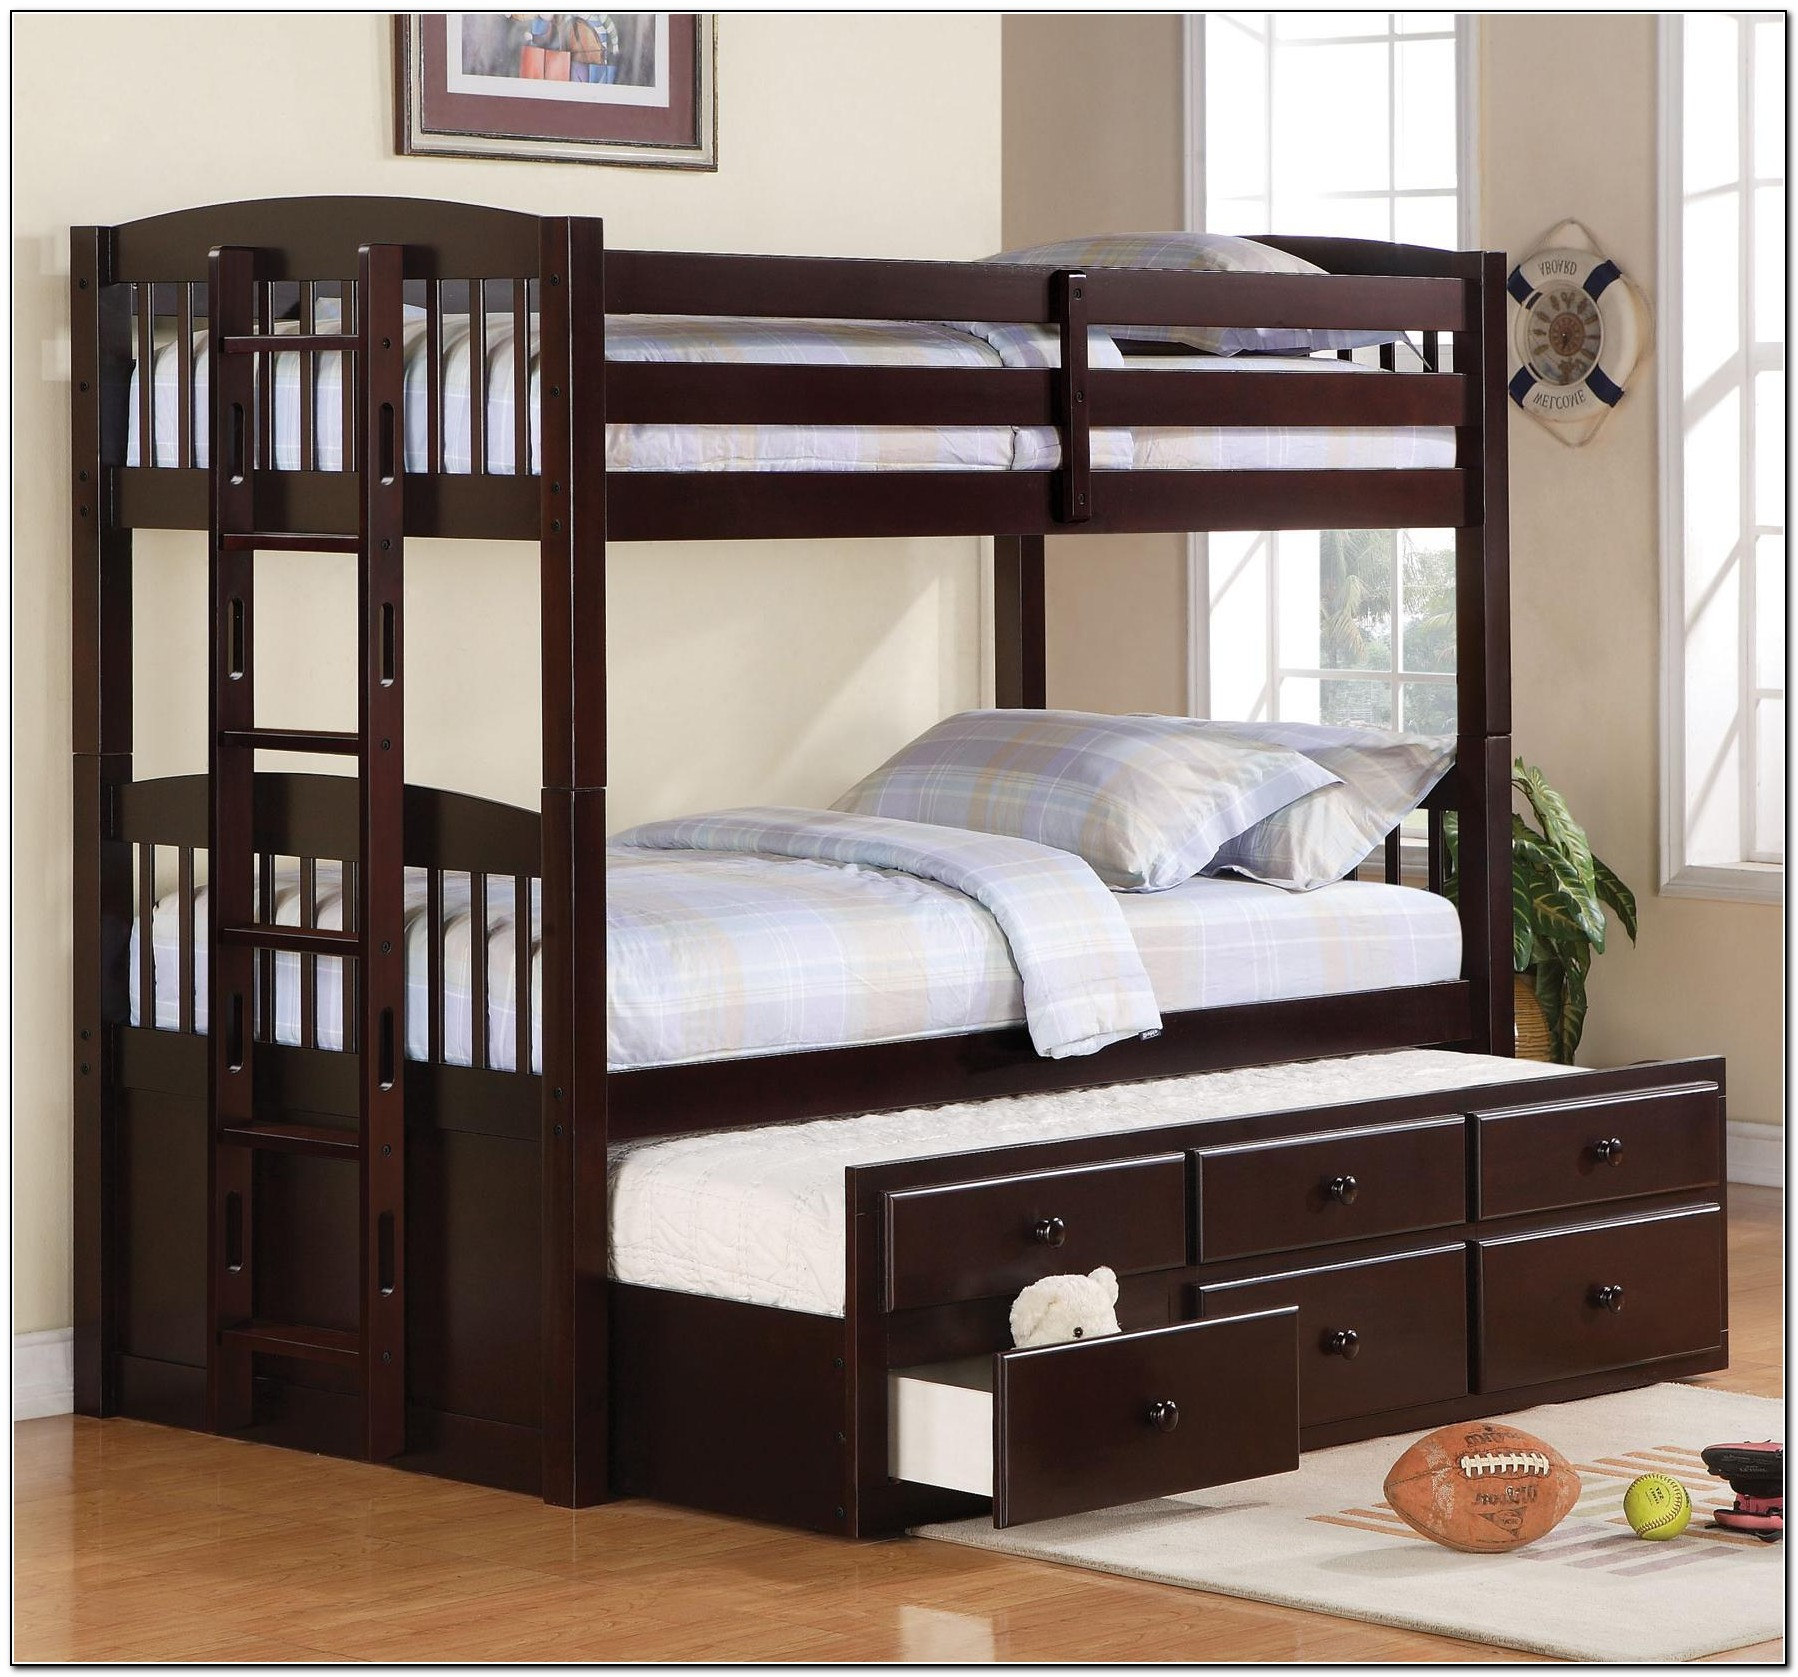 Bunk Bed With Trundle And Storage